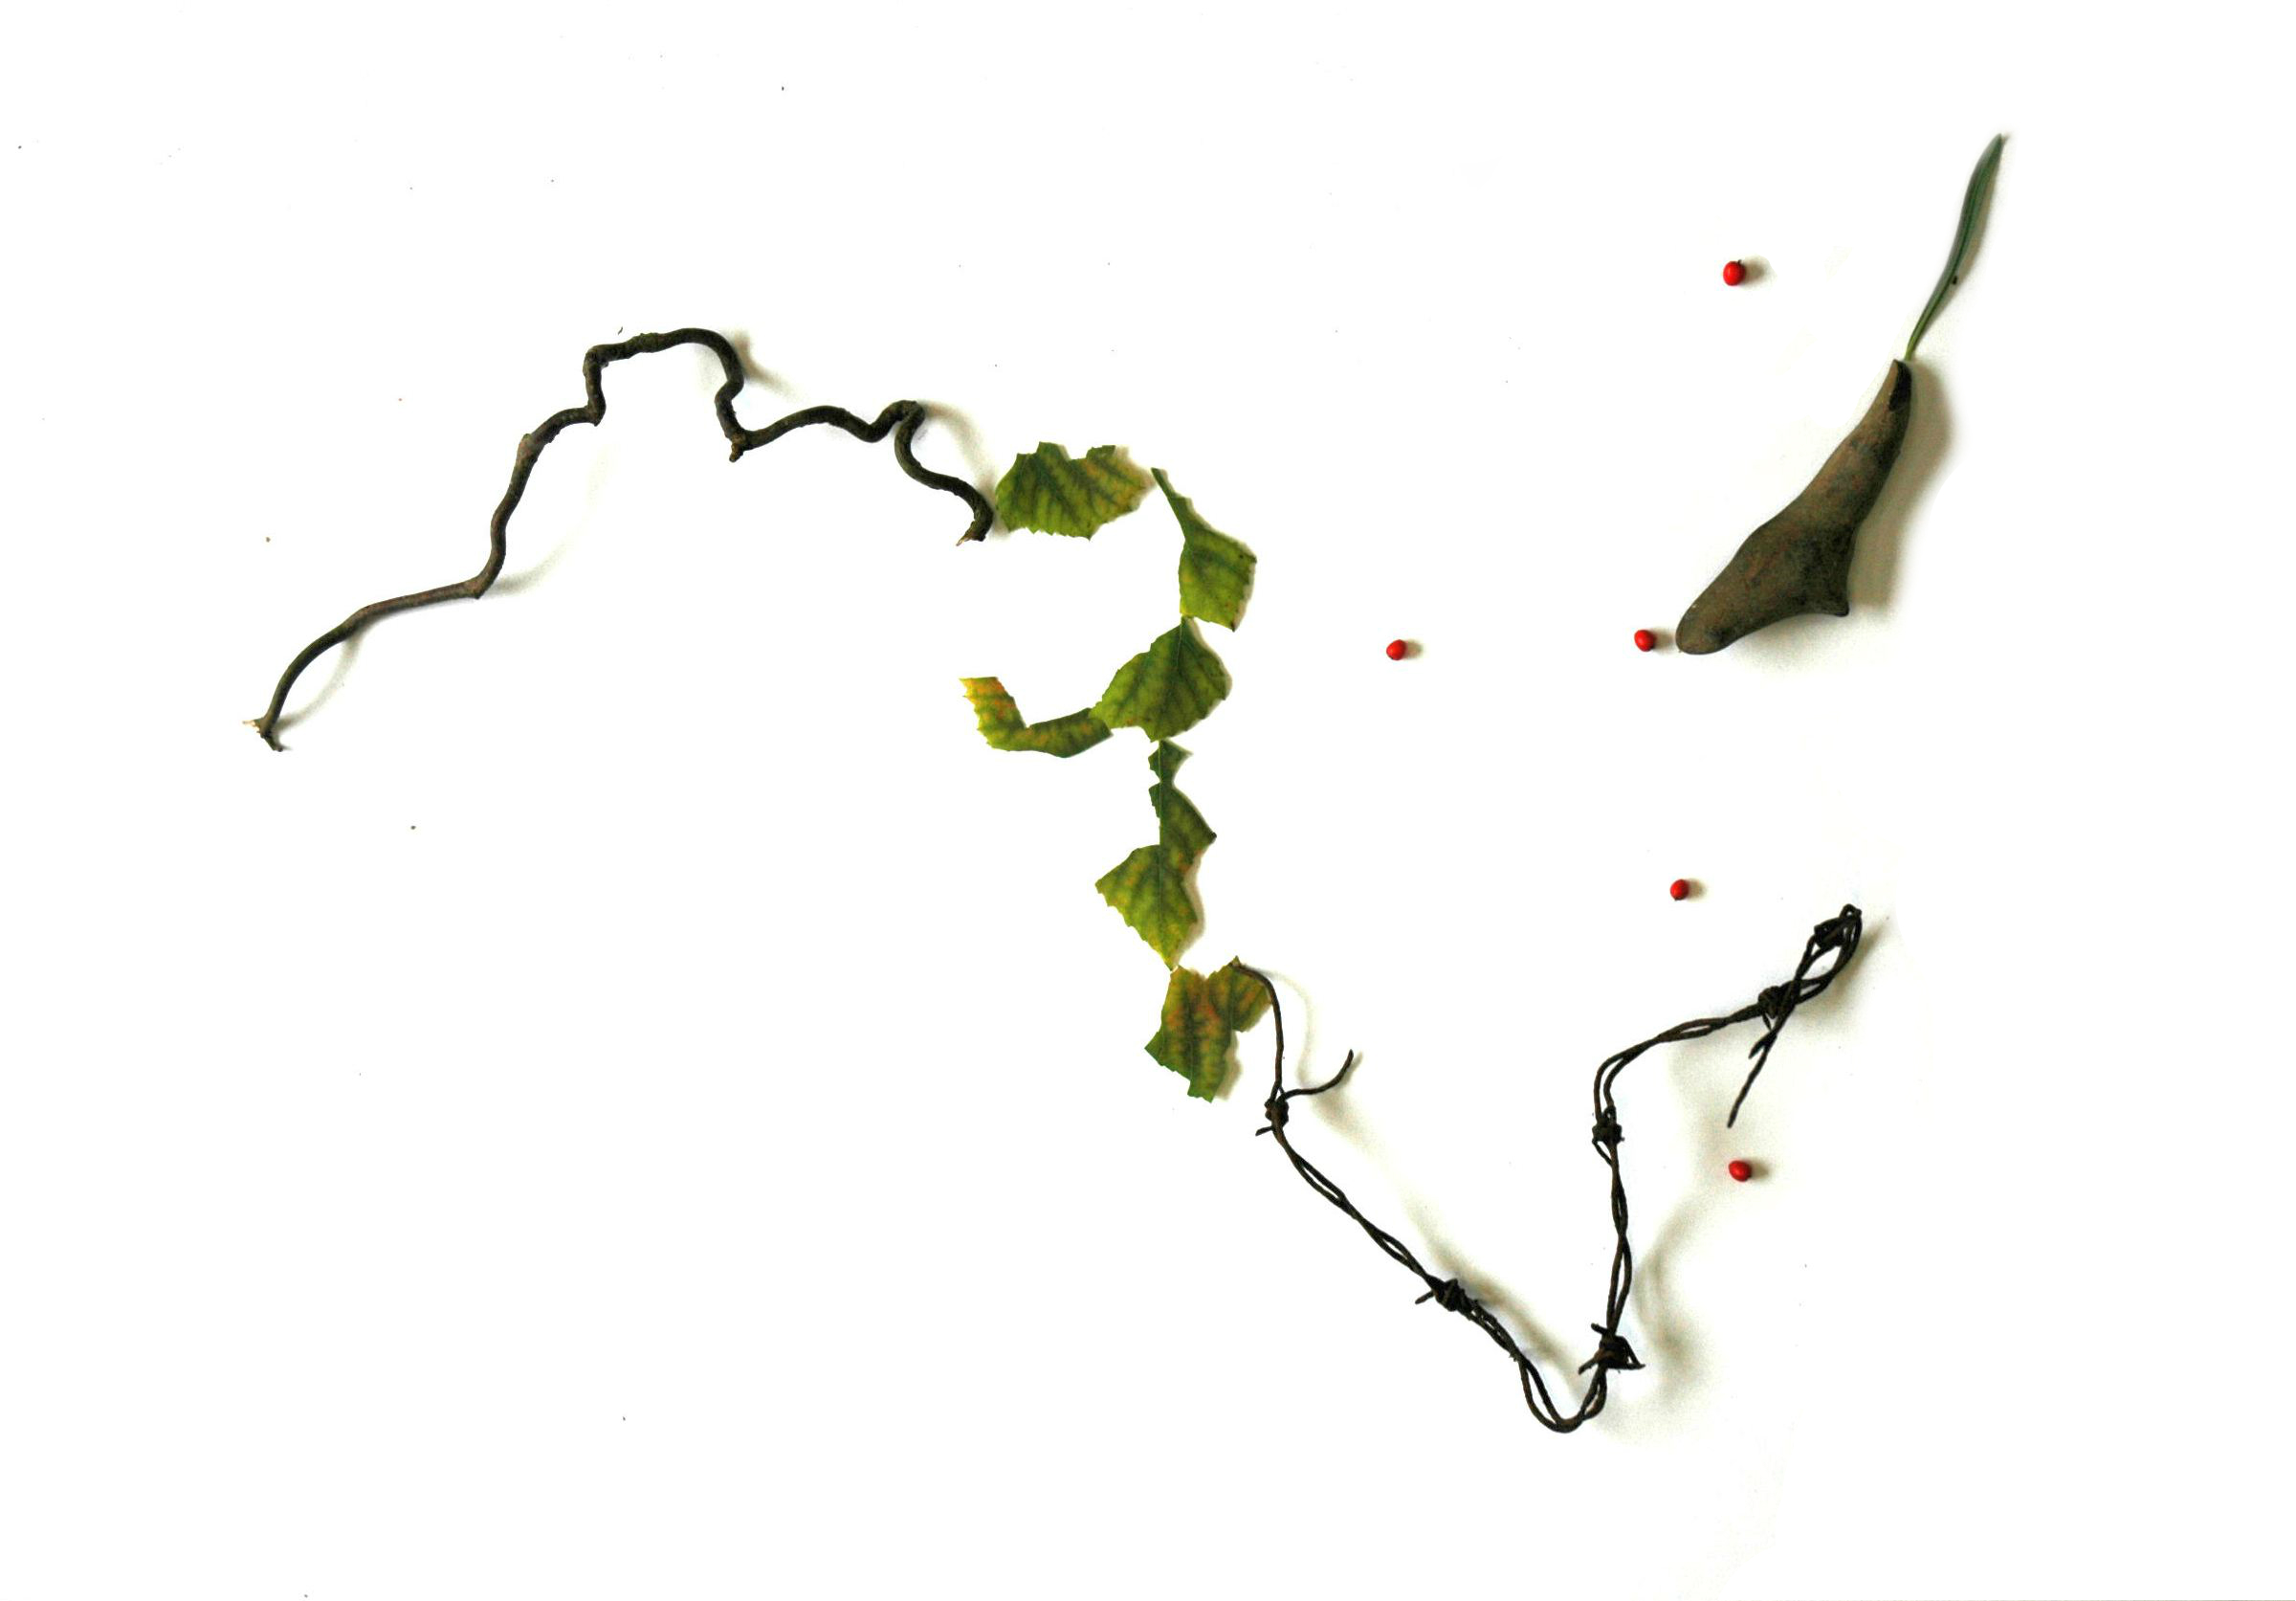 Twigs, leaves and berries